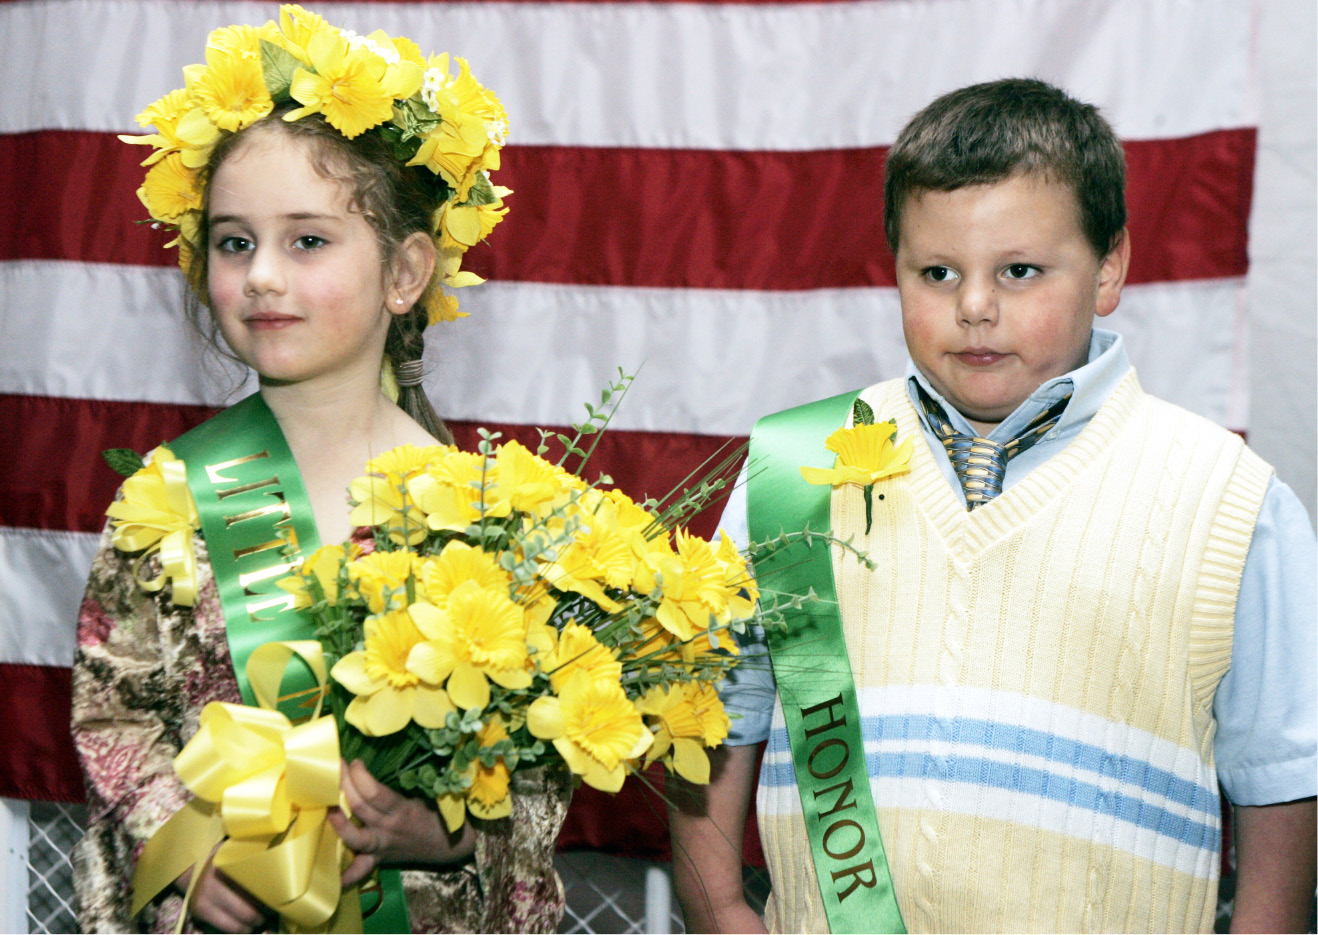 Little Miss Daffodil Mae Lancaster, of Hanover School, and her Honor Escort Daniel Barillaro, of Nathan Hale School, Wed. night, April 27 in Hubbard Park.